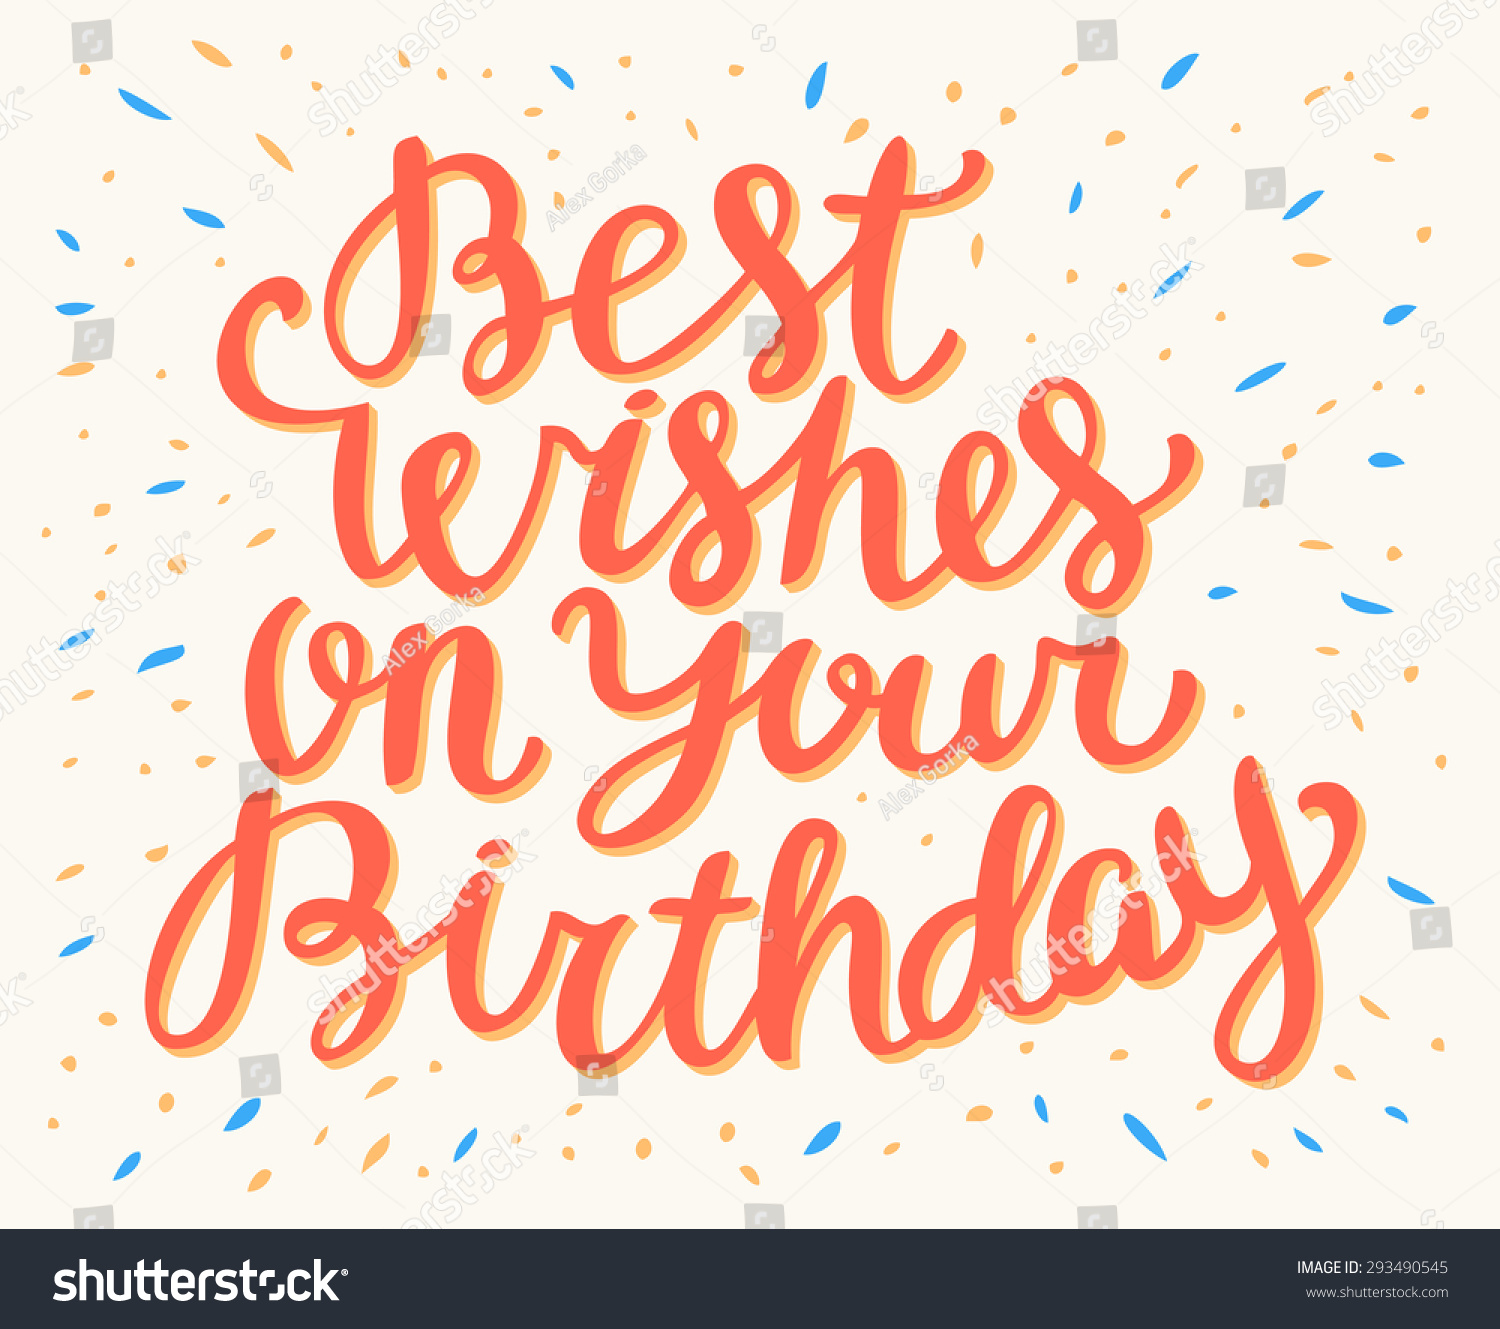 Best wishes on your birthday stock vector 293490545 for All the very best images